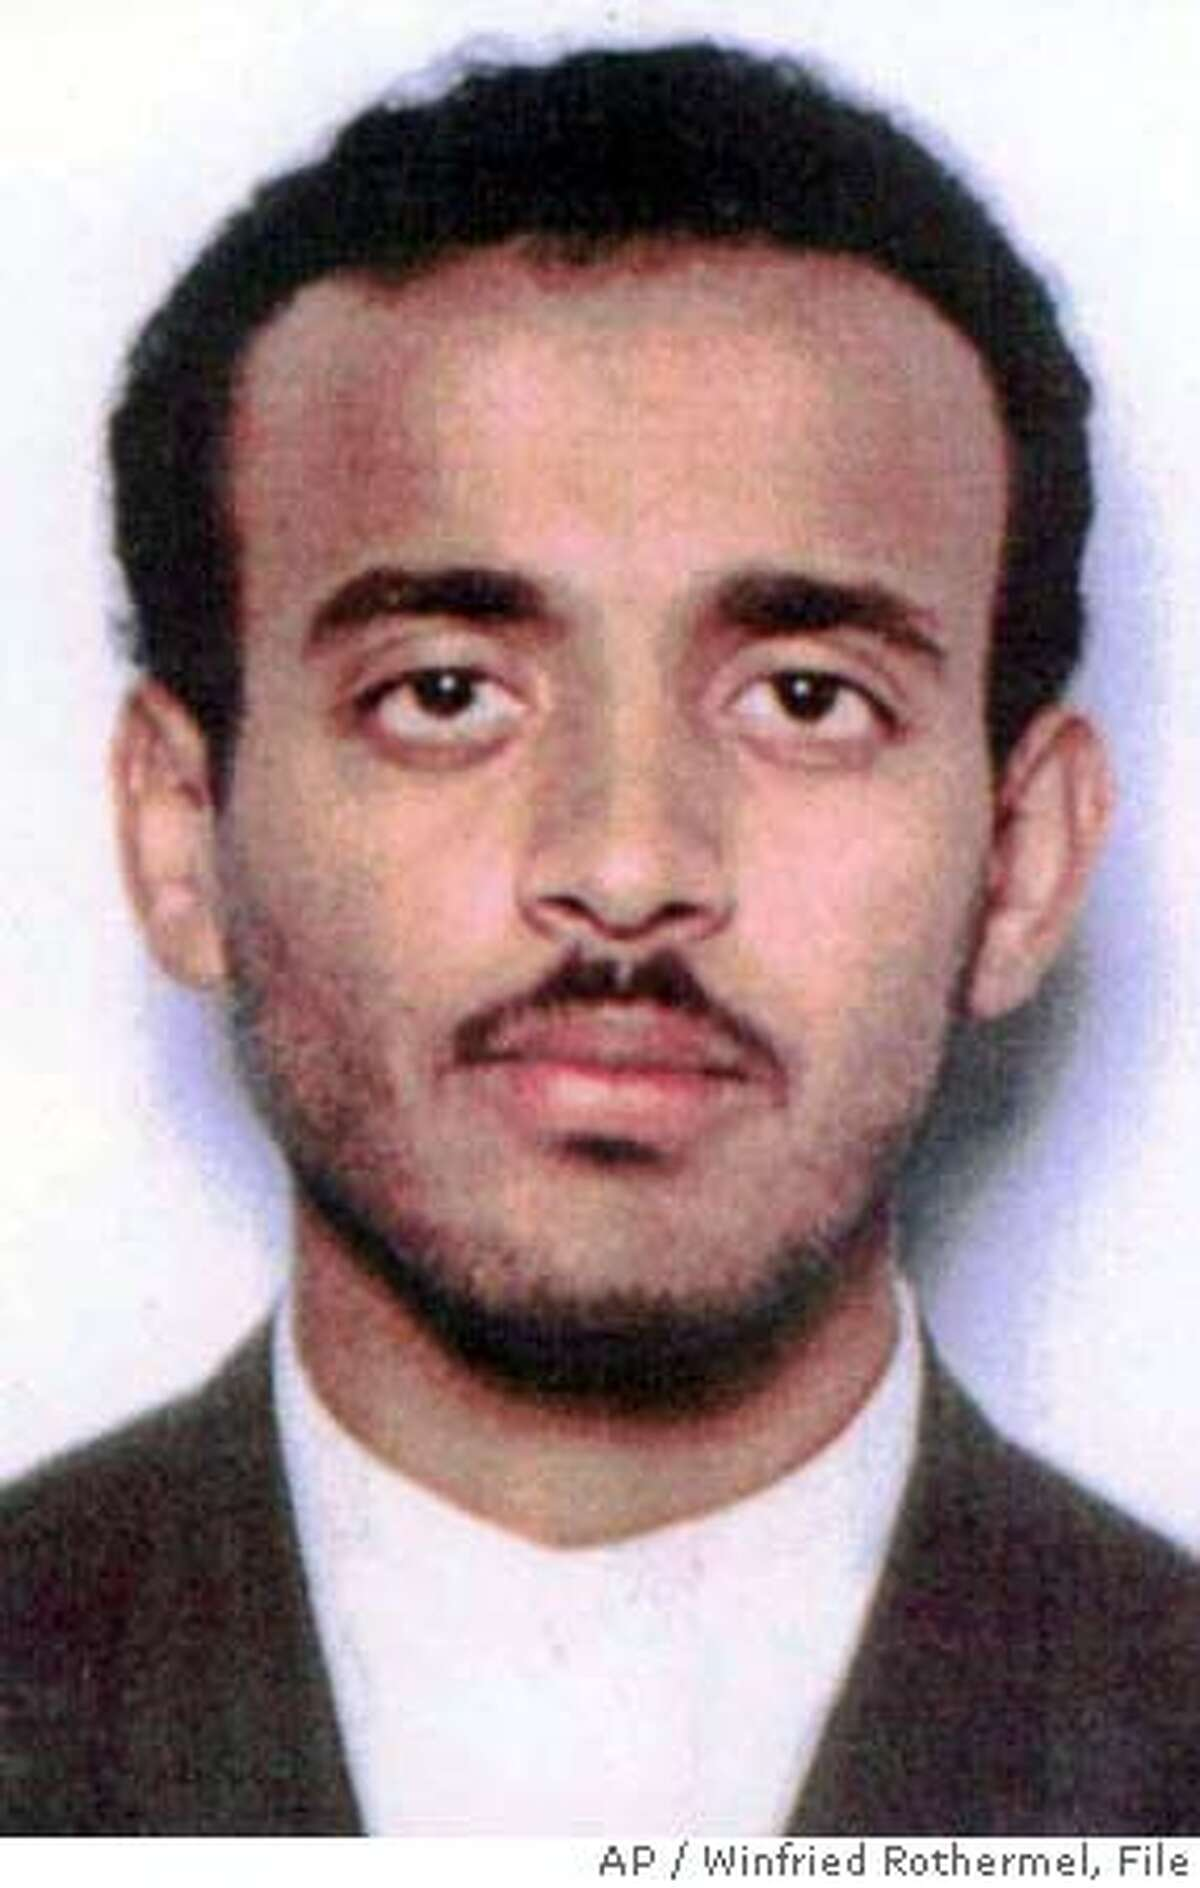 ** FILE ** Ramzi Binalshibh, a Yemeni national, is seen in this undated handout photo. Alleged Sept. 11 planner Binalshibh and four other al-Qaida suspects were handed over to the United States on Monday, Sept. 16, 2002, state-run television said. From restaurants to shopping malls to their secret apartment meeting place, key Sept. 11 plotters moved around Malaysia's largest city in comfortable obscurity. The al-Qaida members were photographed during their visit in January 2000 by security officials atvarious places in and around the gleaming capital, but it was their Malaysian and Indonesian hosts who were the targets of the surveillance, officials say. (AP Photo/Winfried Rothermel) ALSO RAN 11/20/02, 06/27/03 CAT ###3/5/2004##5star#a4#